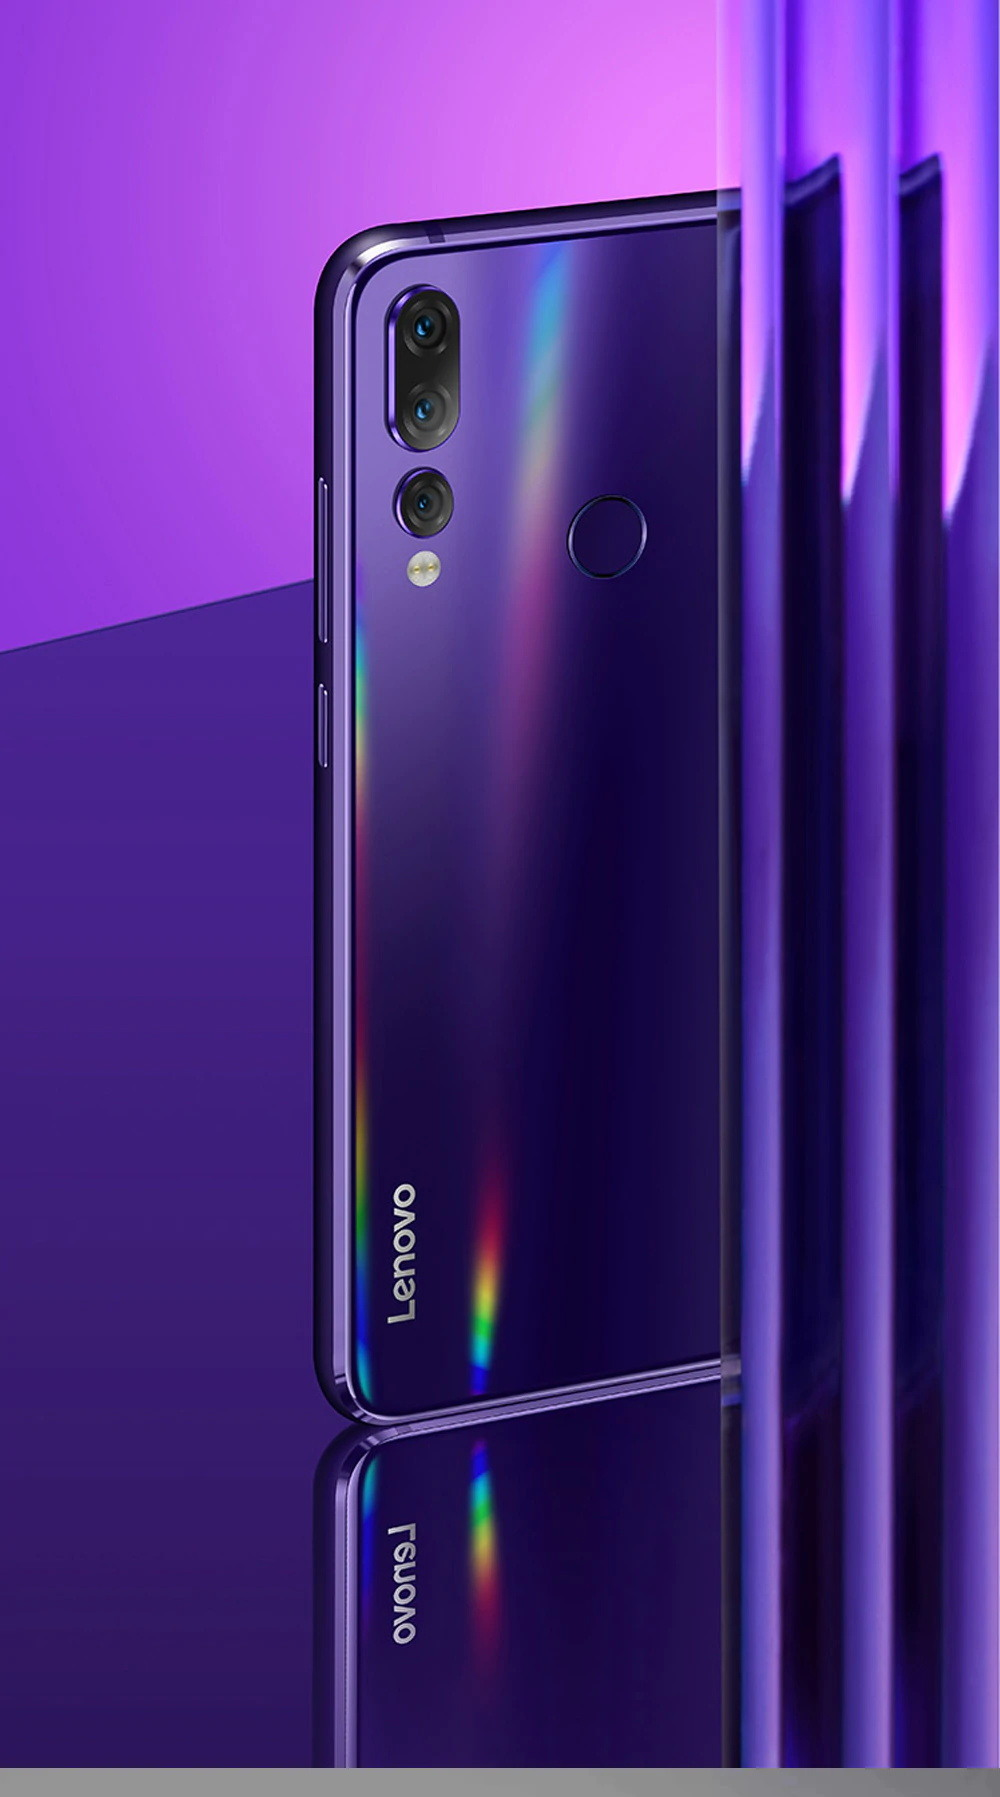 buy lenovo z5s 4gb/64gb global version